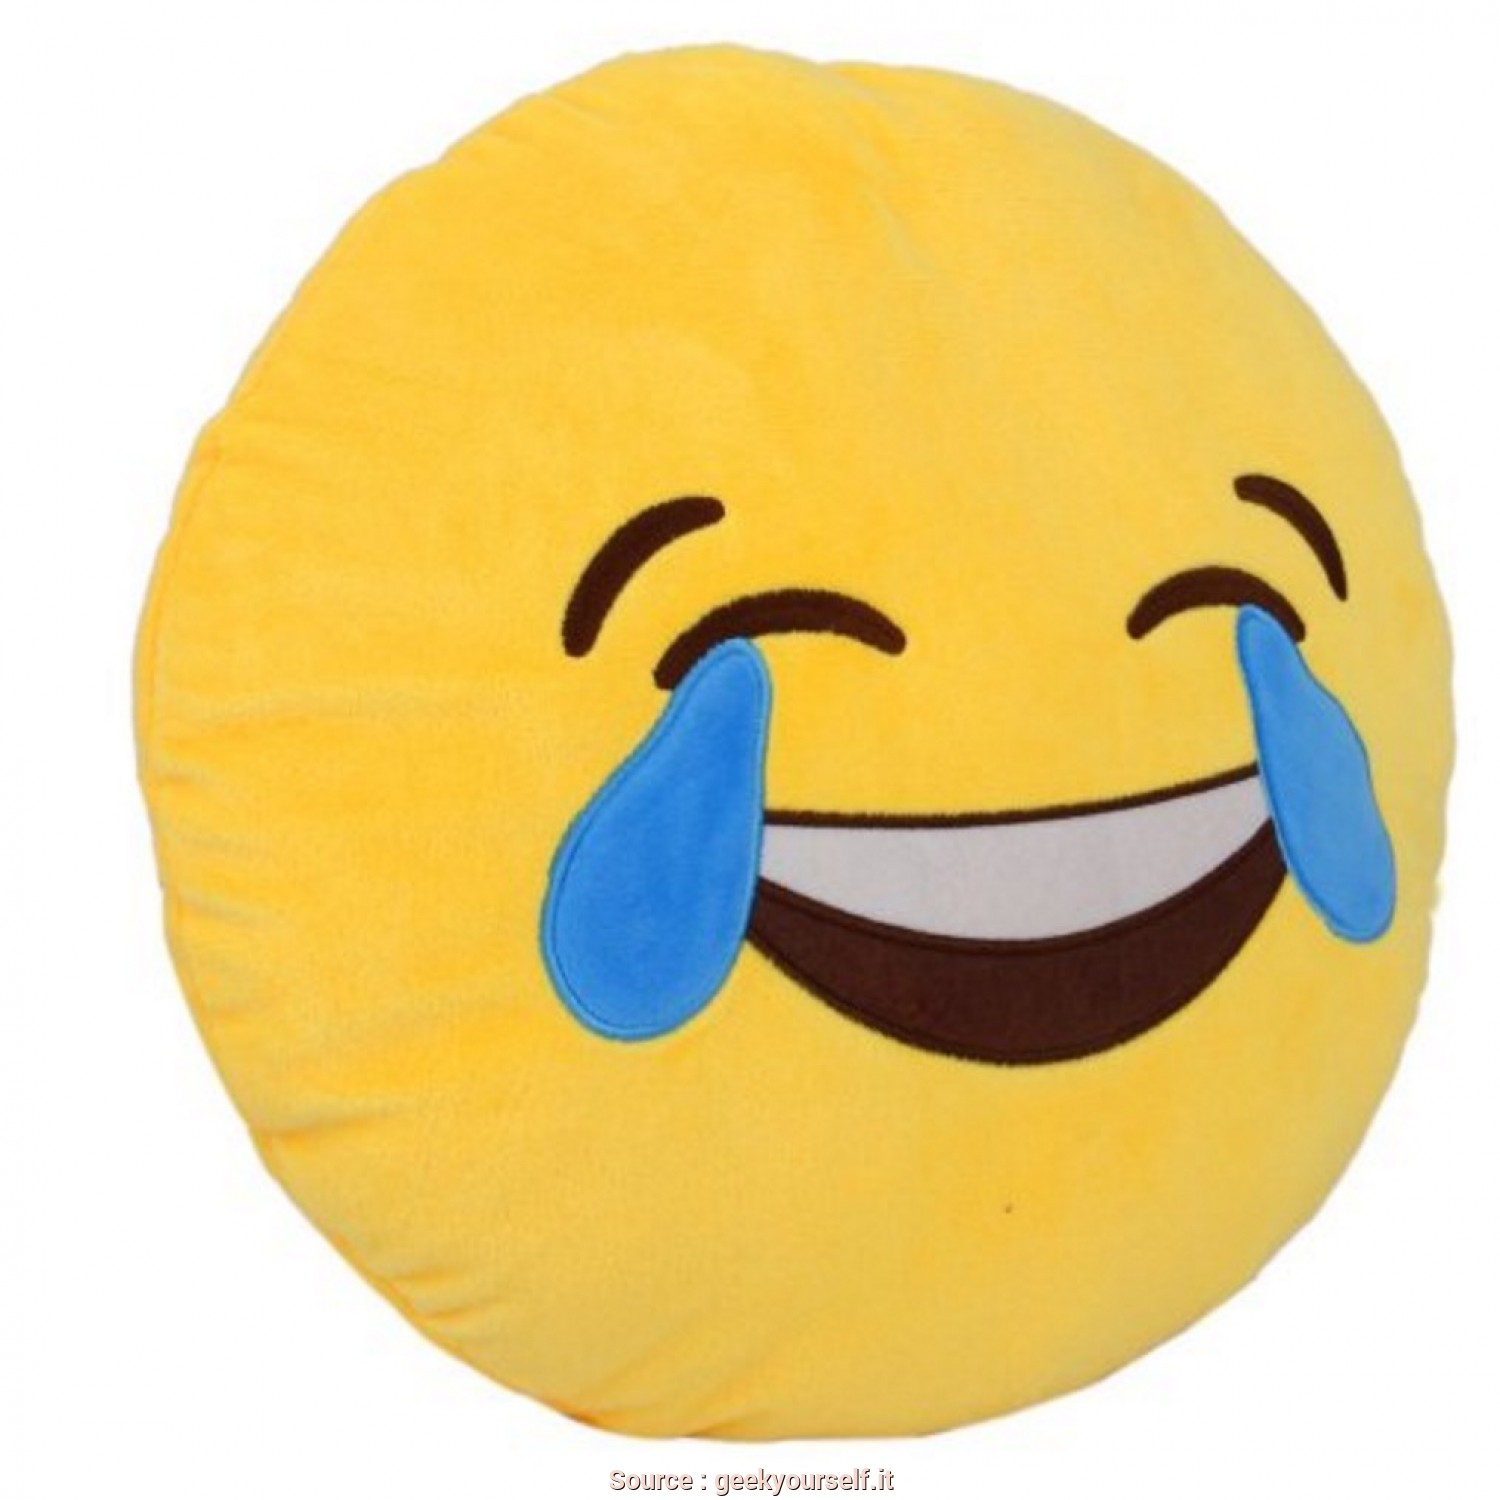 Cuscini Emoticon.Cuscini Emoticon Grandi Amabile Cuscini Emoticon E Faccine Ecco